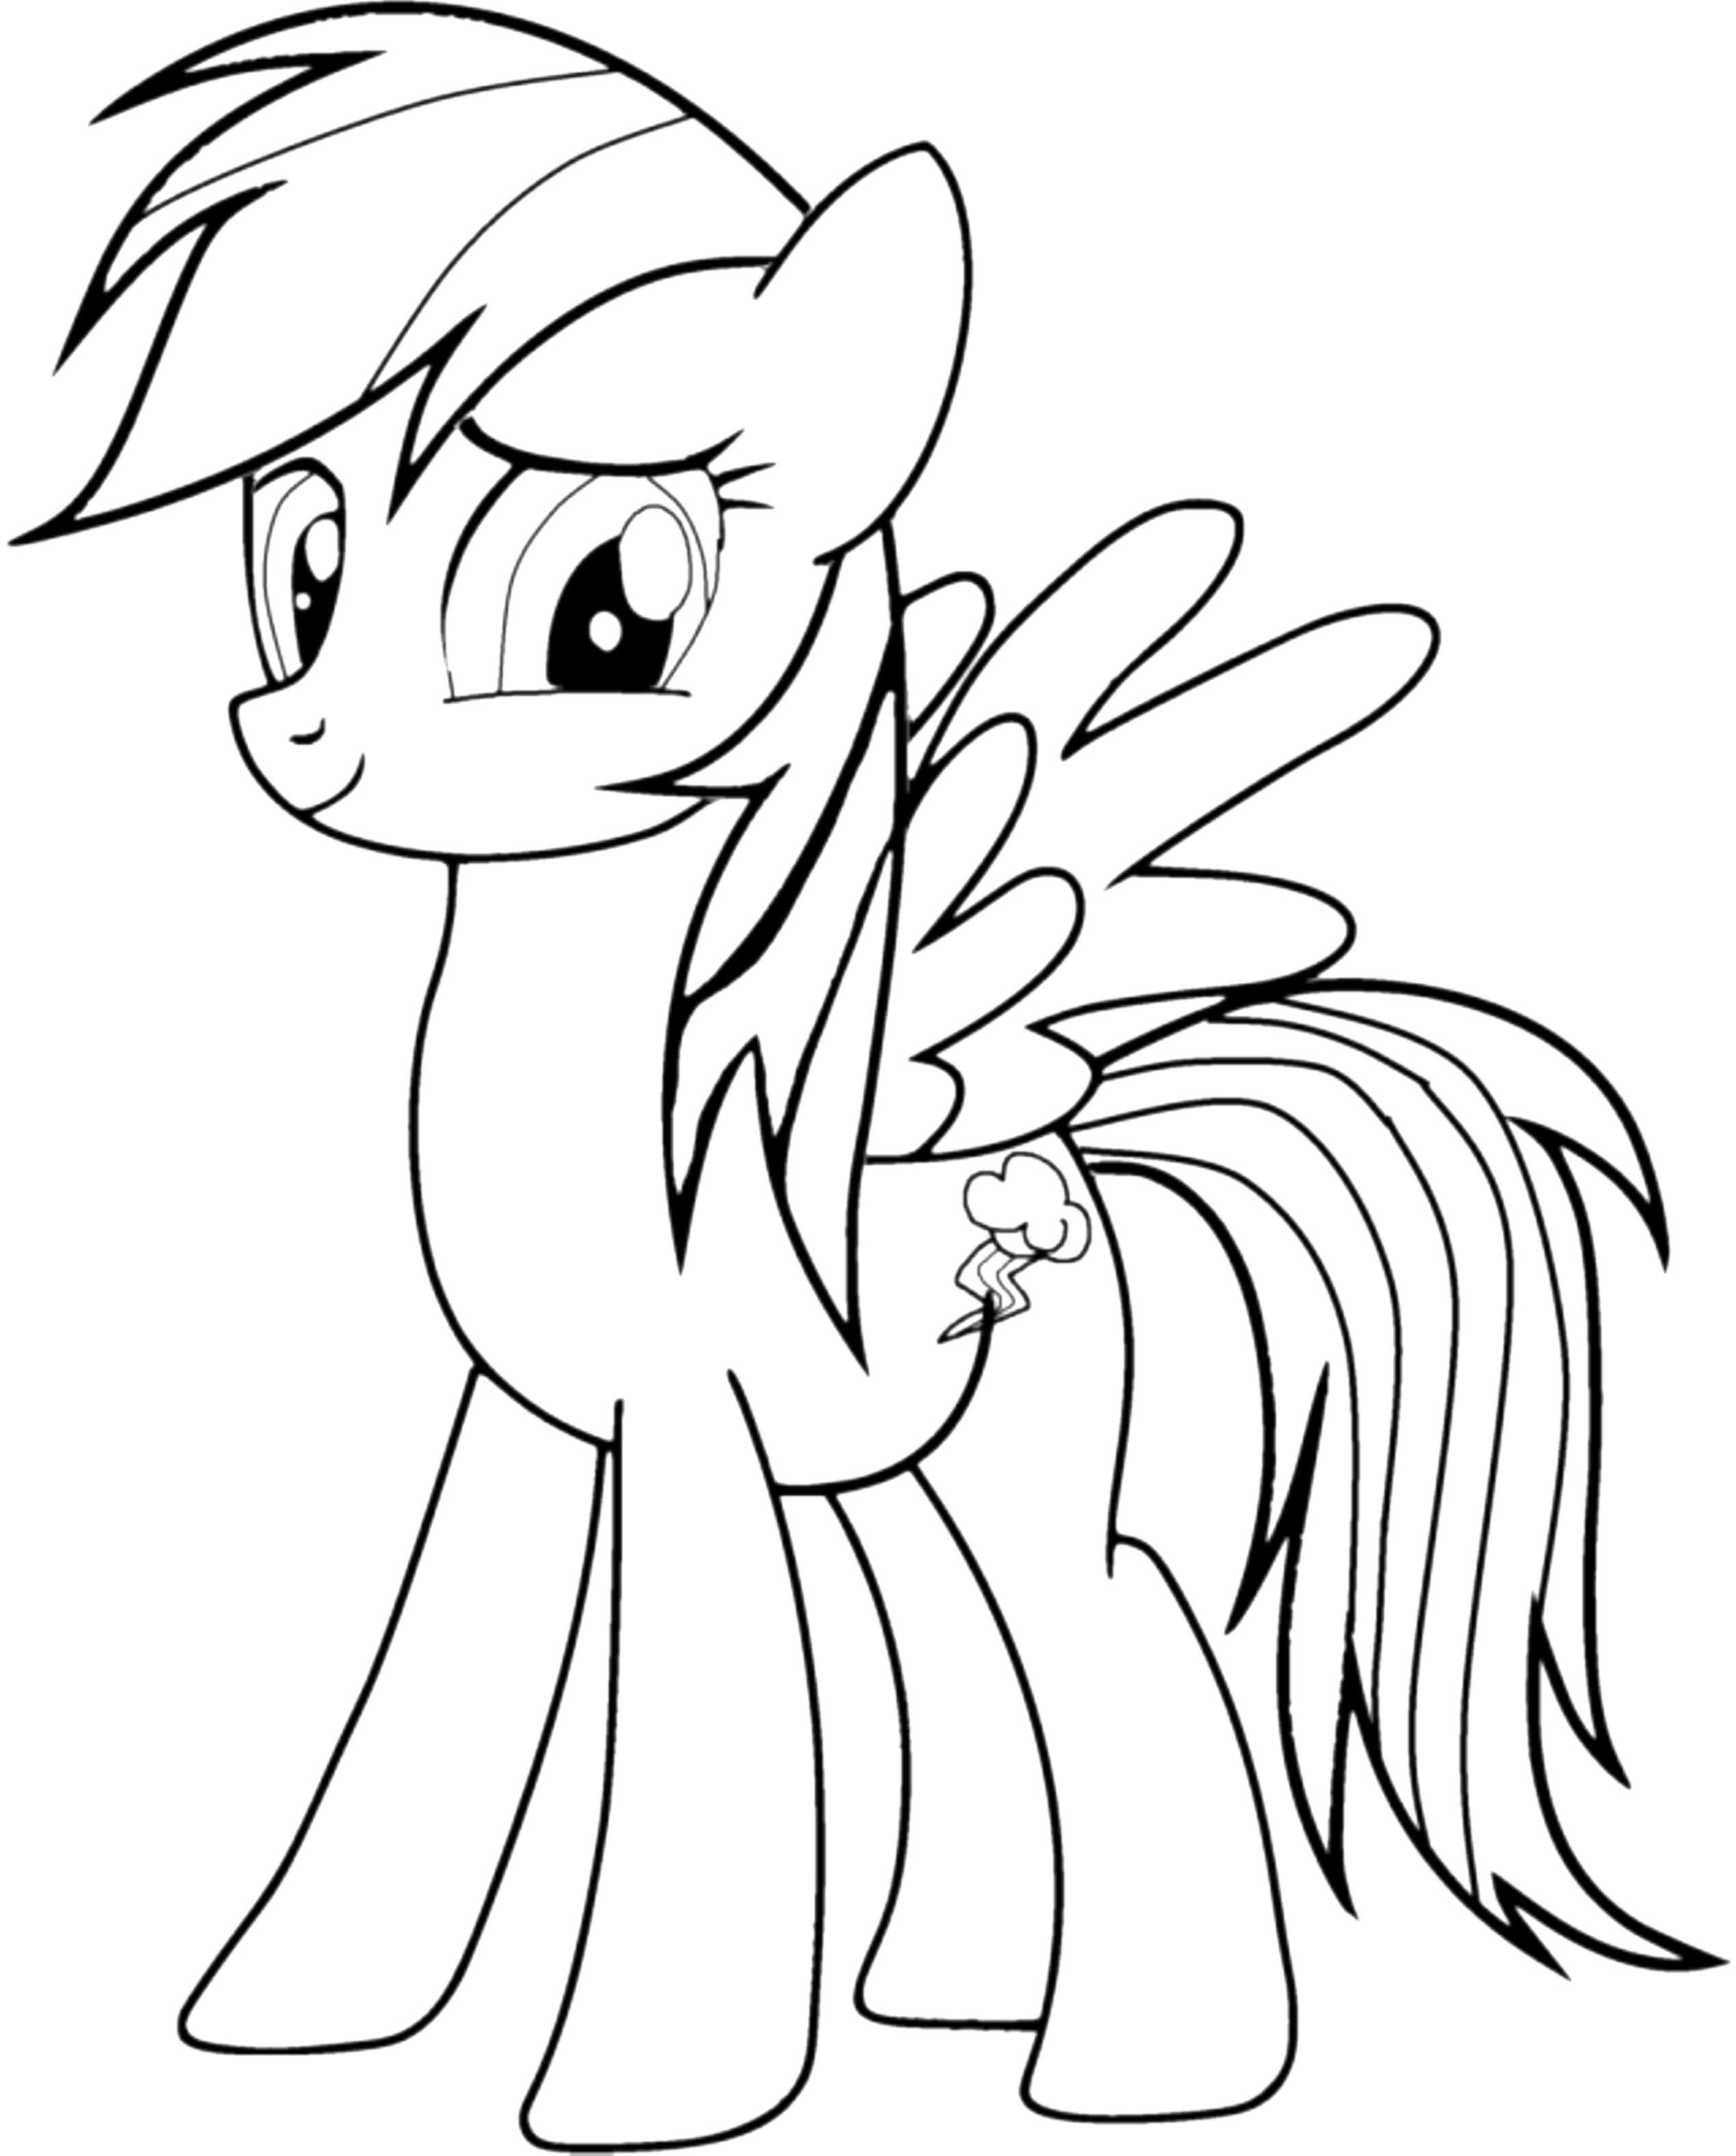 dash coloring pages - photo#1